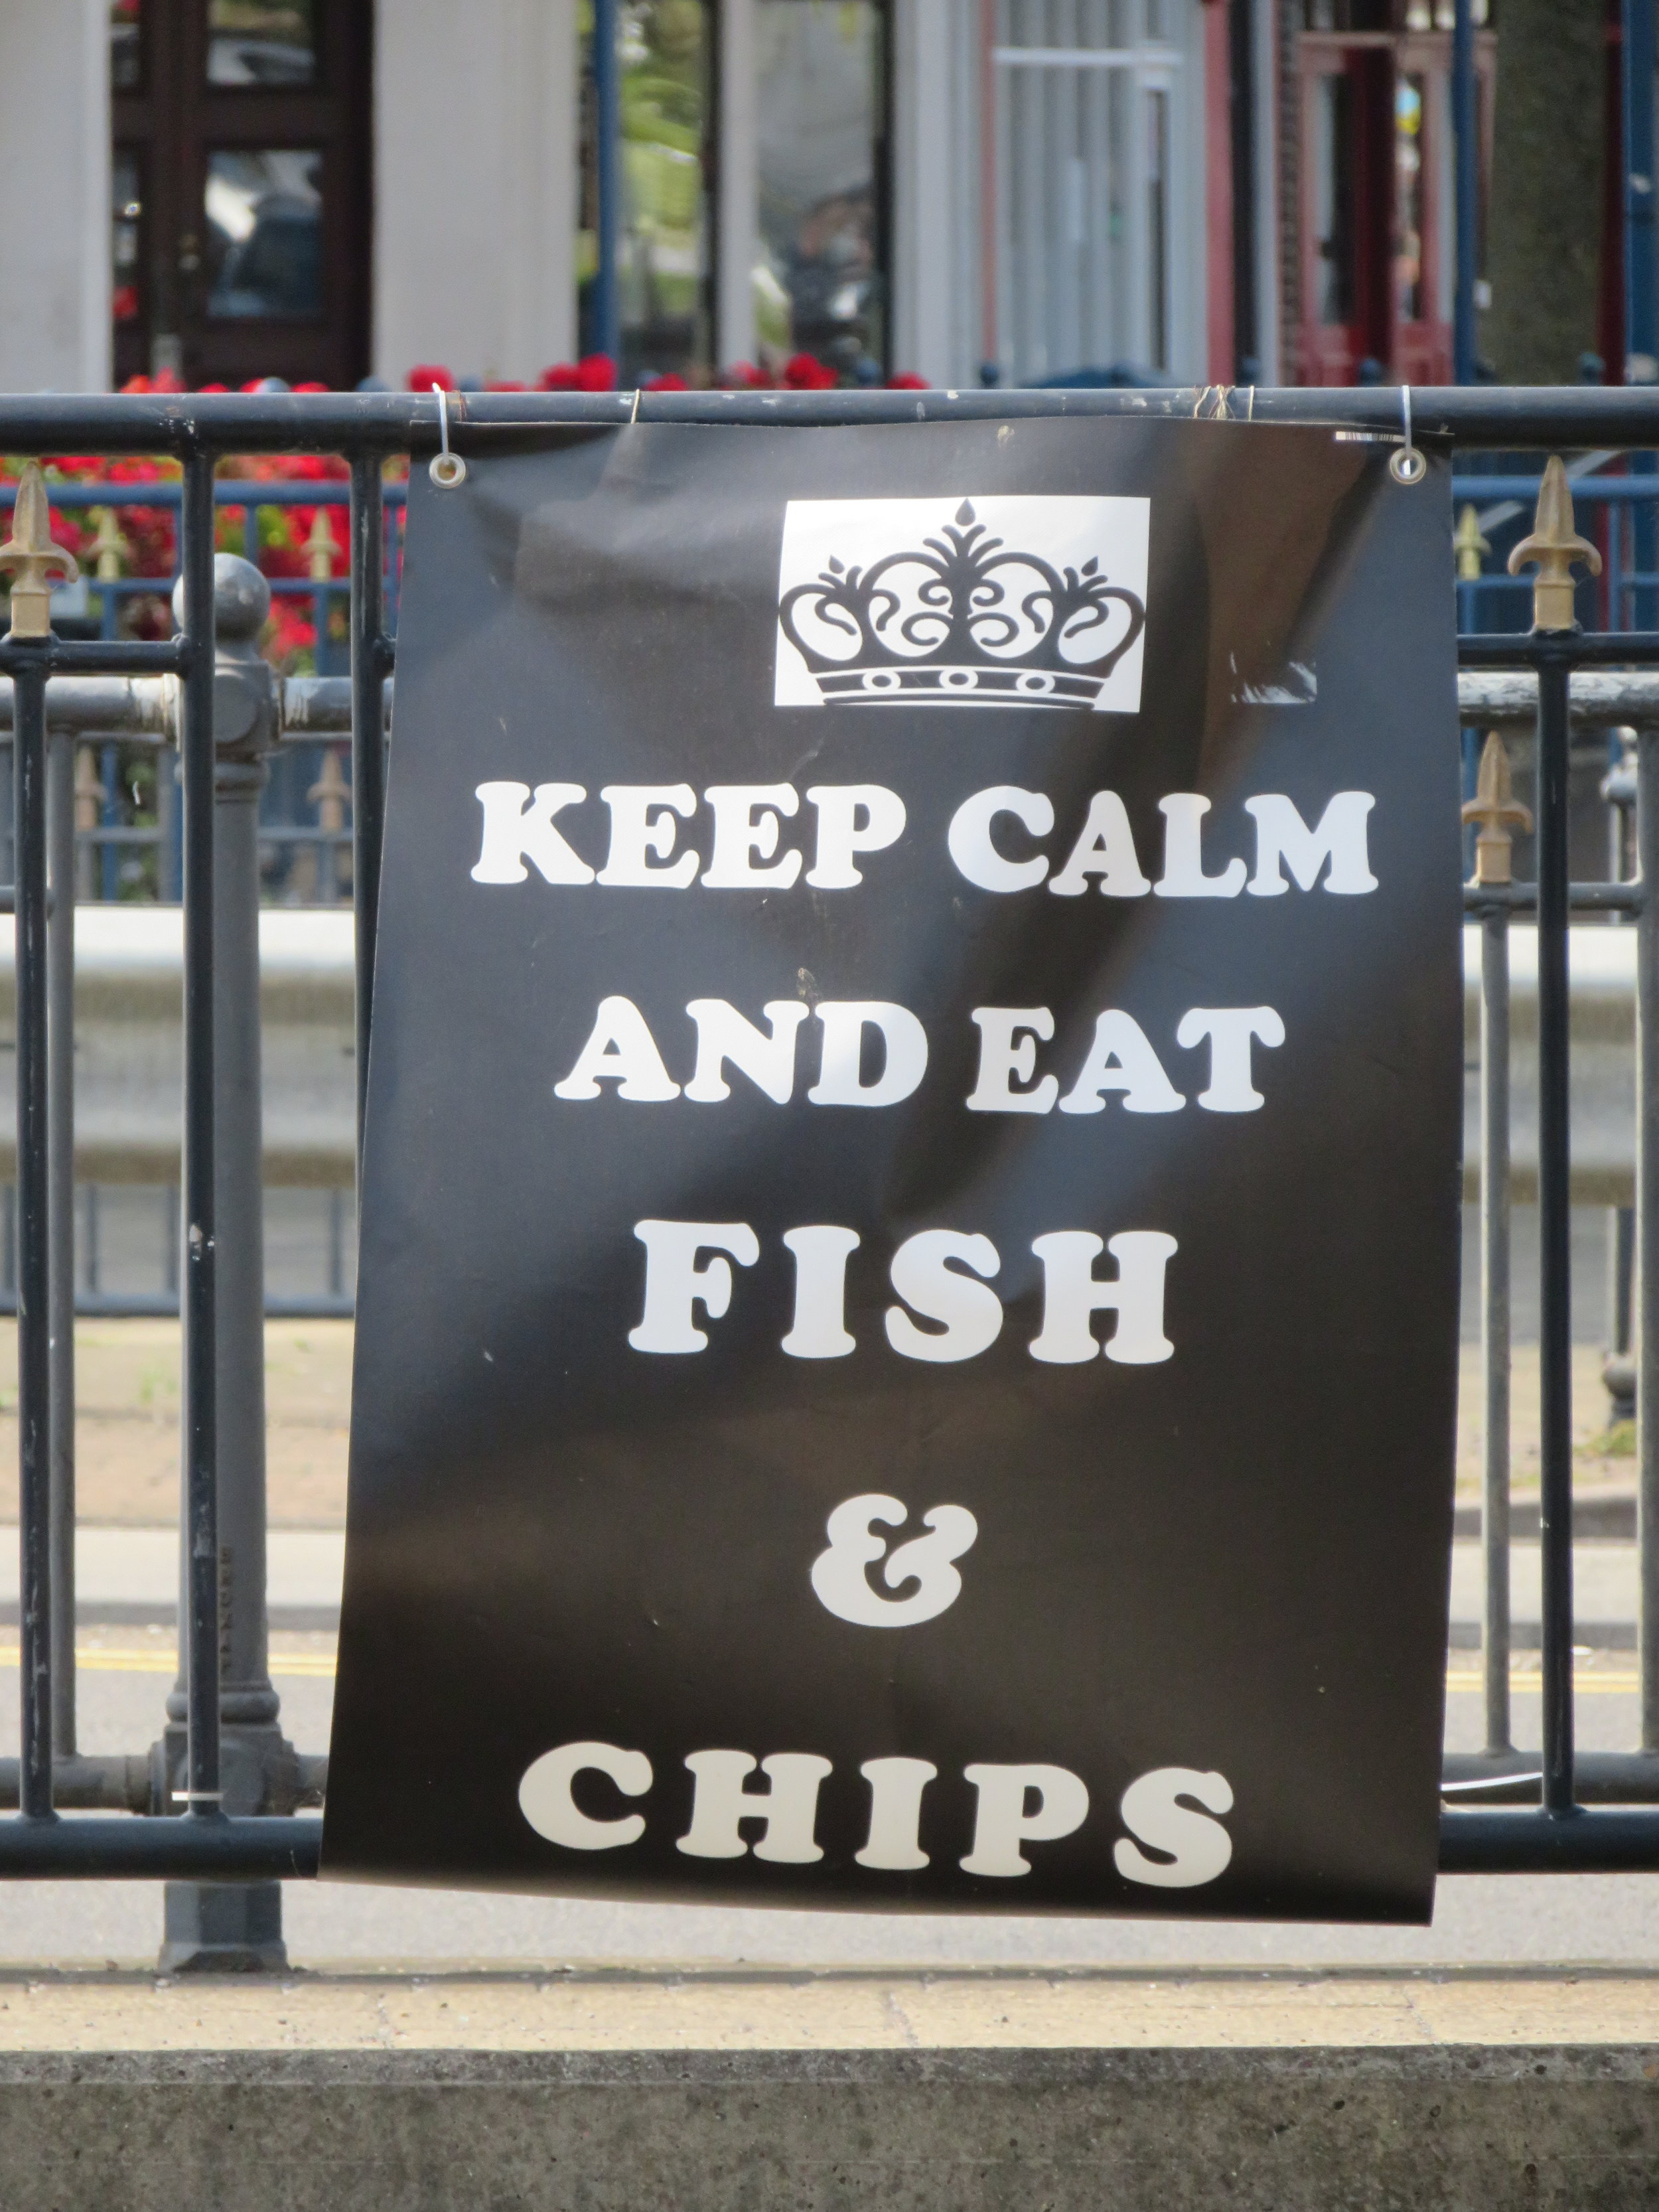 There was no doubt we were in England when we saw this sign.